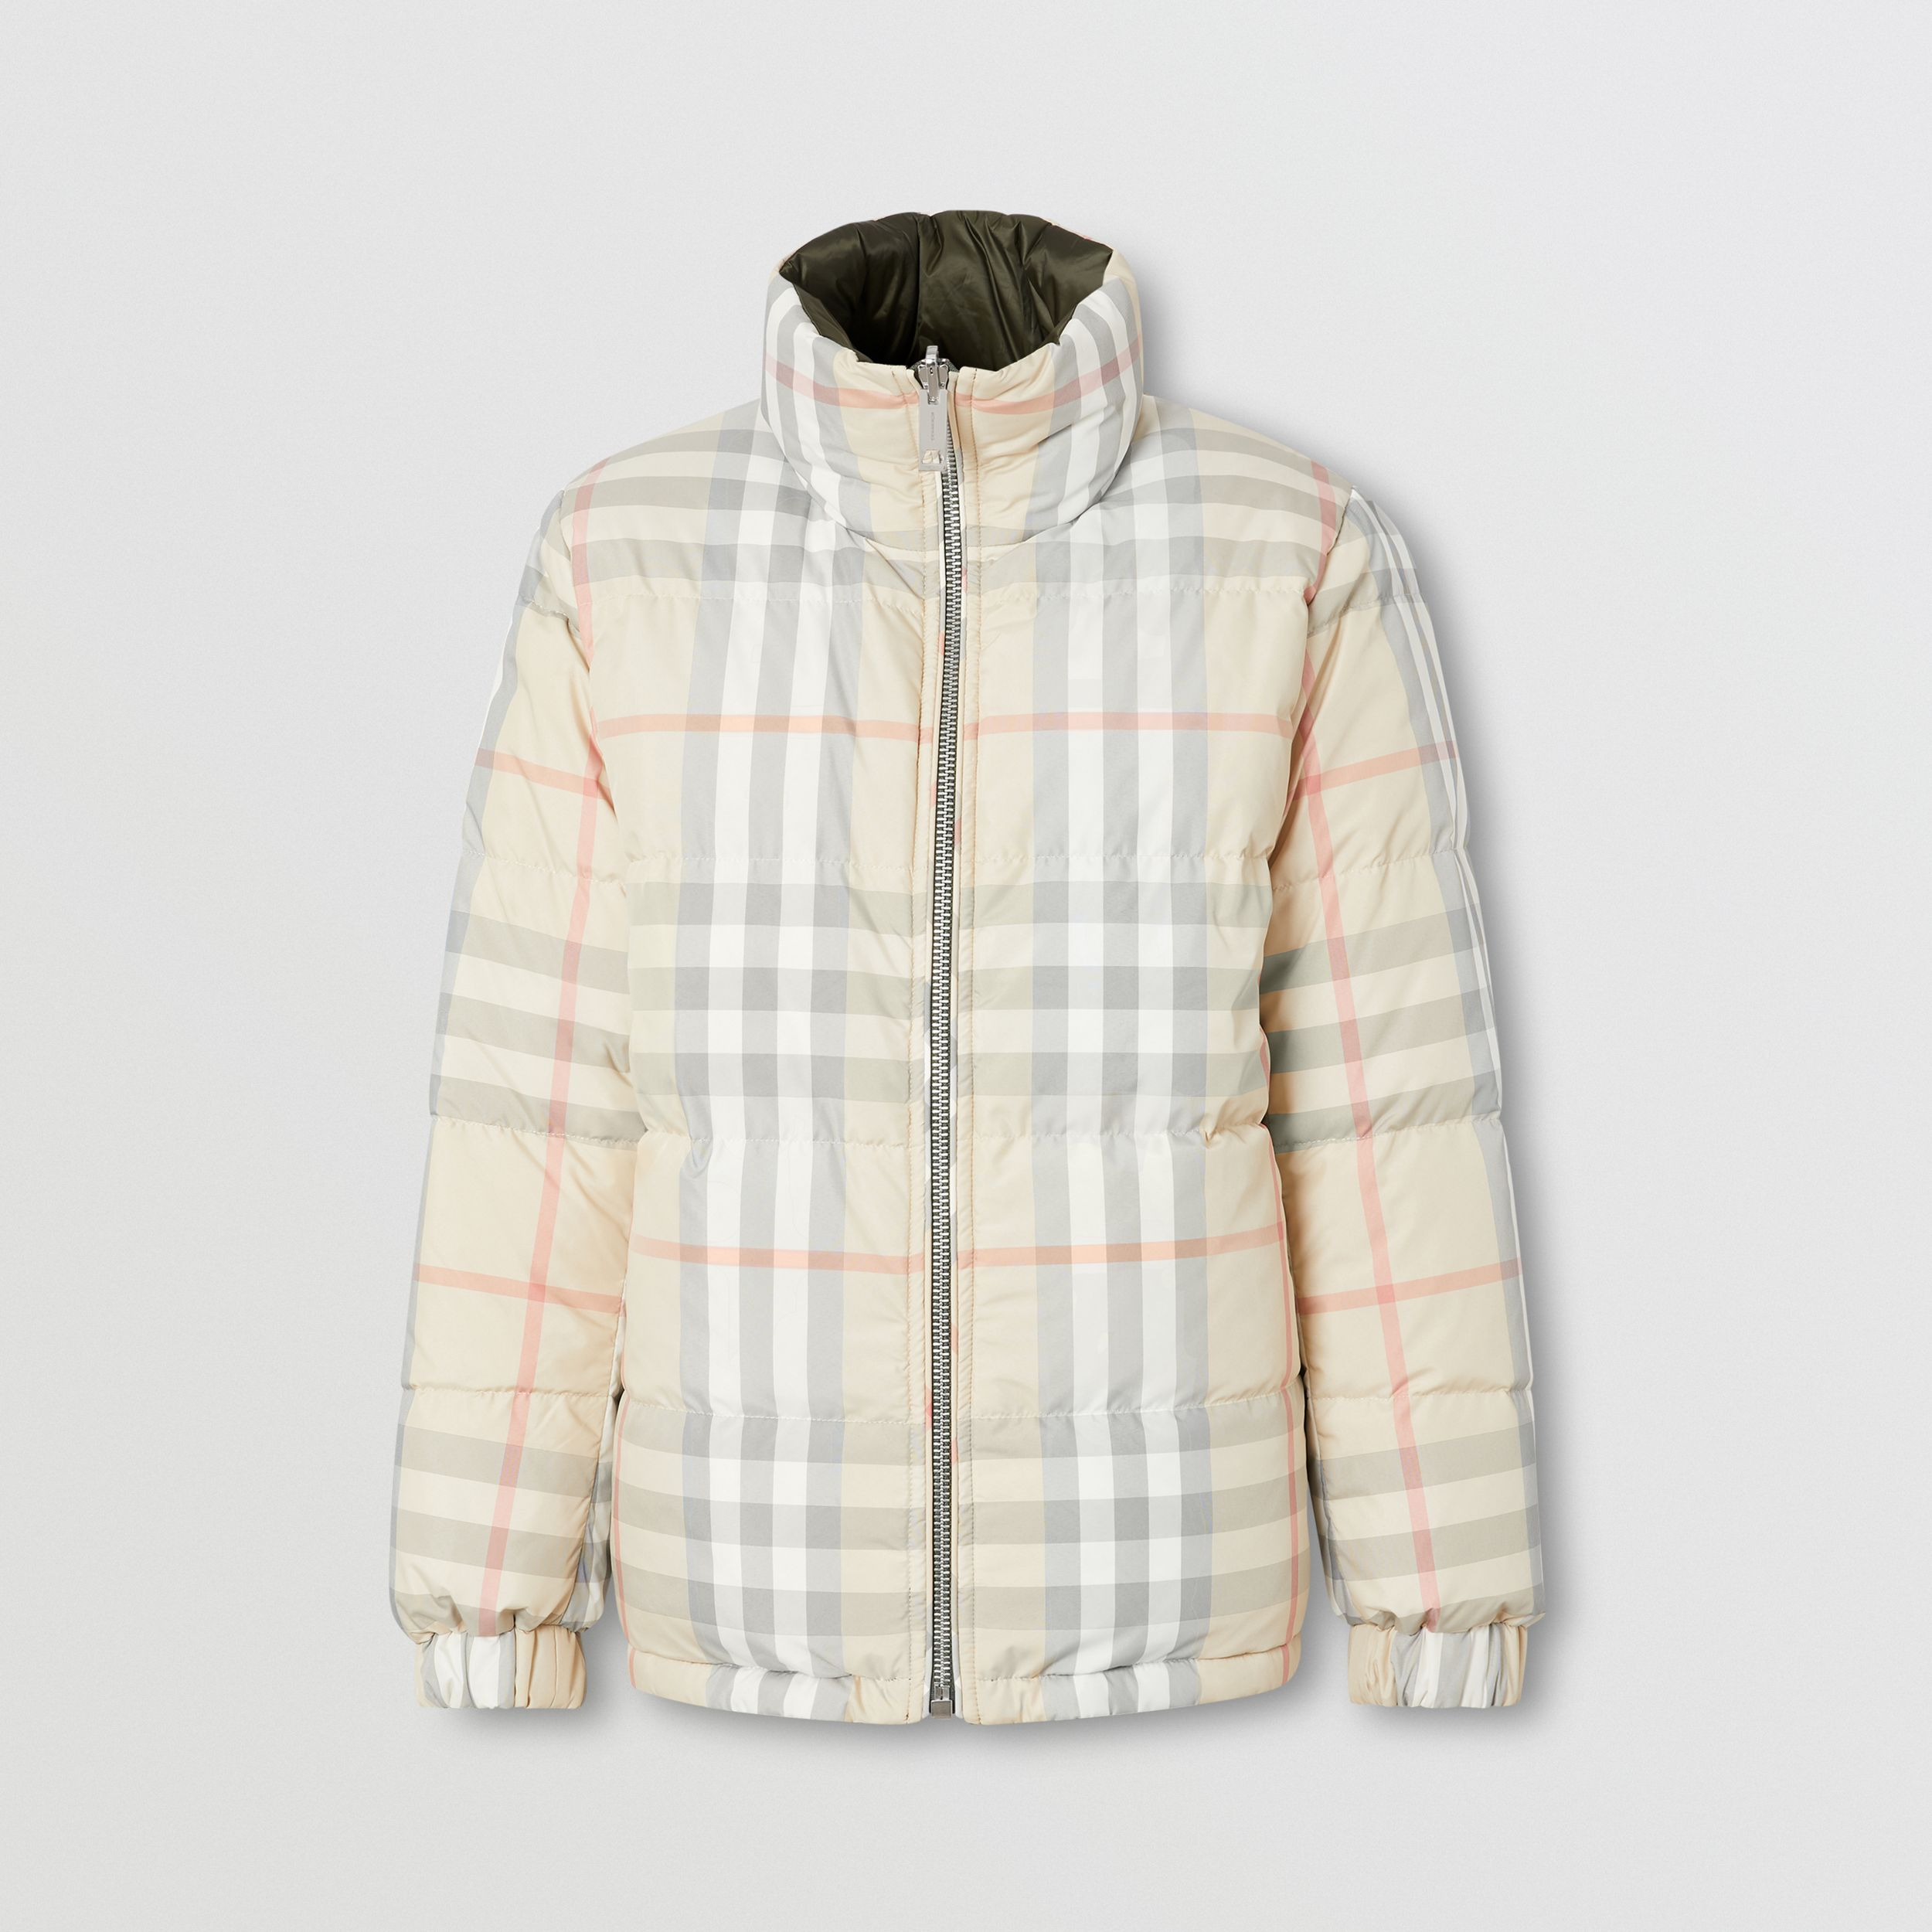 Reversible Check Puffer Jacket in Olive - Women | Burberry - 1